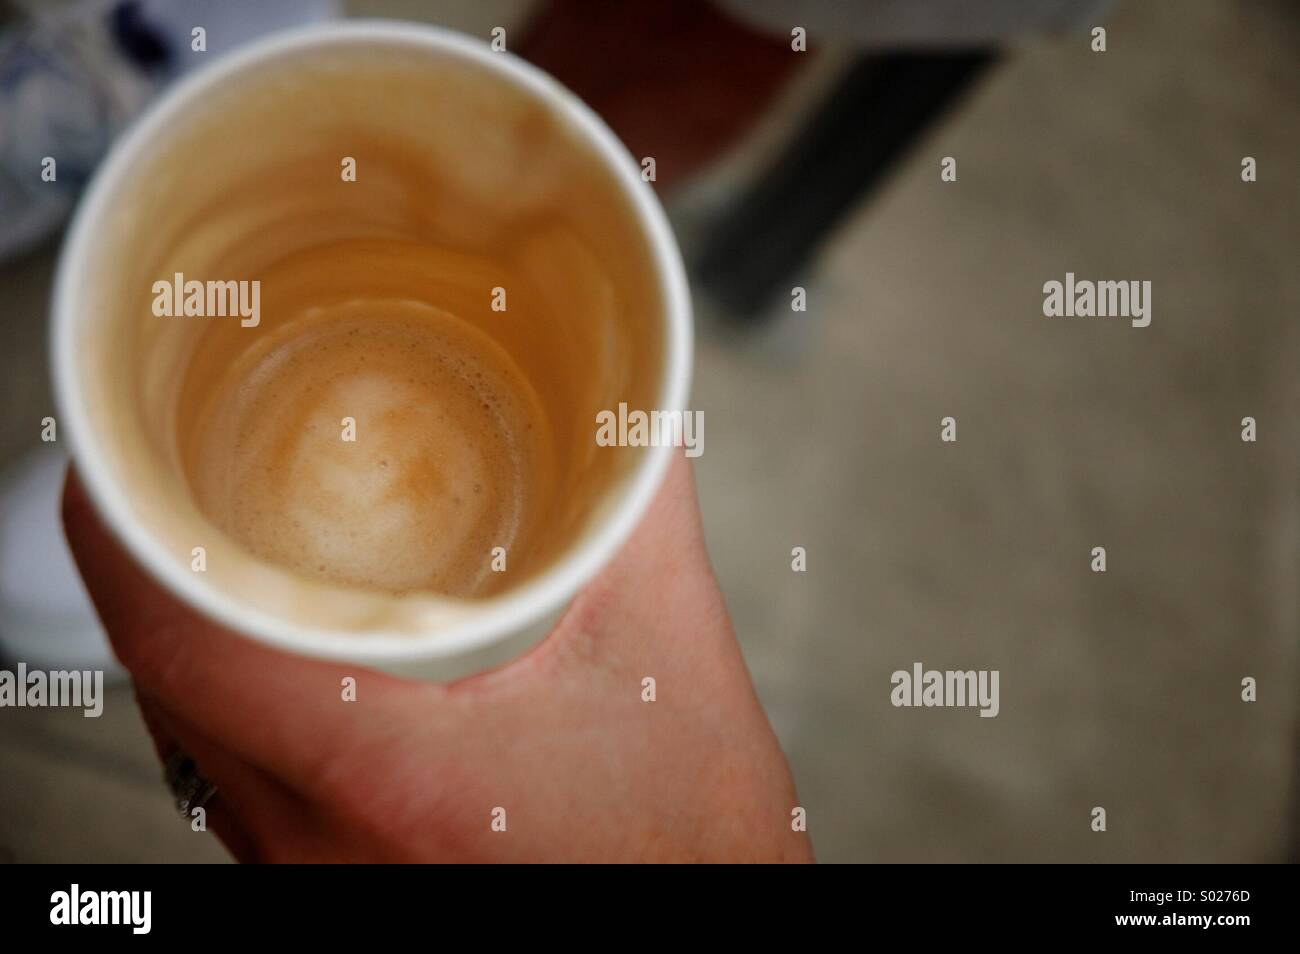 Empty coffee cup with residual foamStock Photo